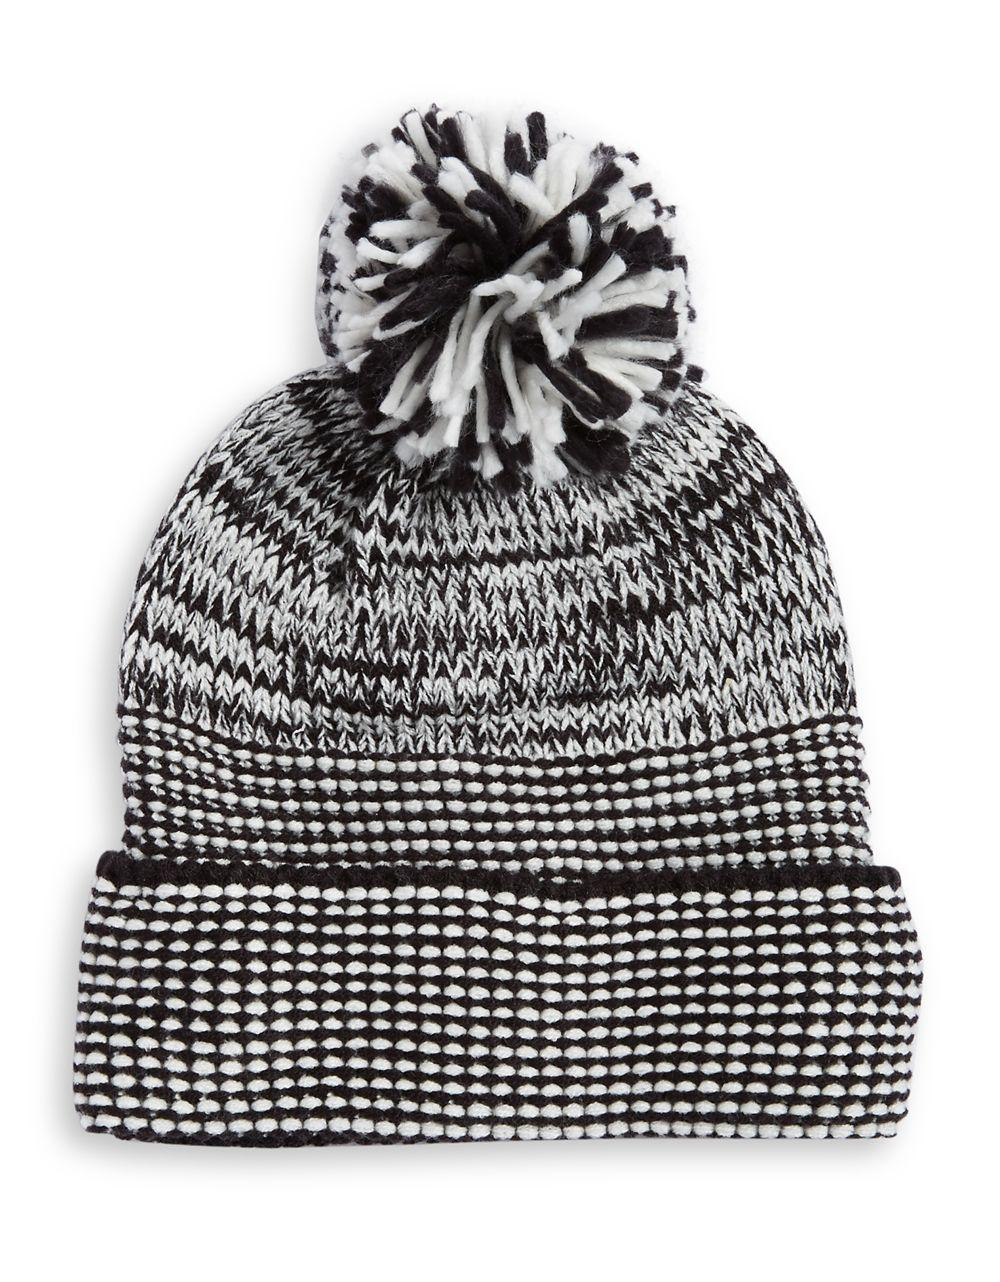 Lyst - Rebecca Minkoff Always On Cable Knit Headphone Beanie in Black d51c5d0a4d4